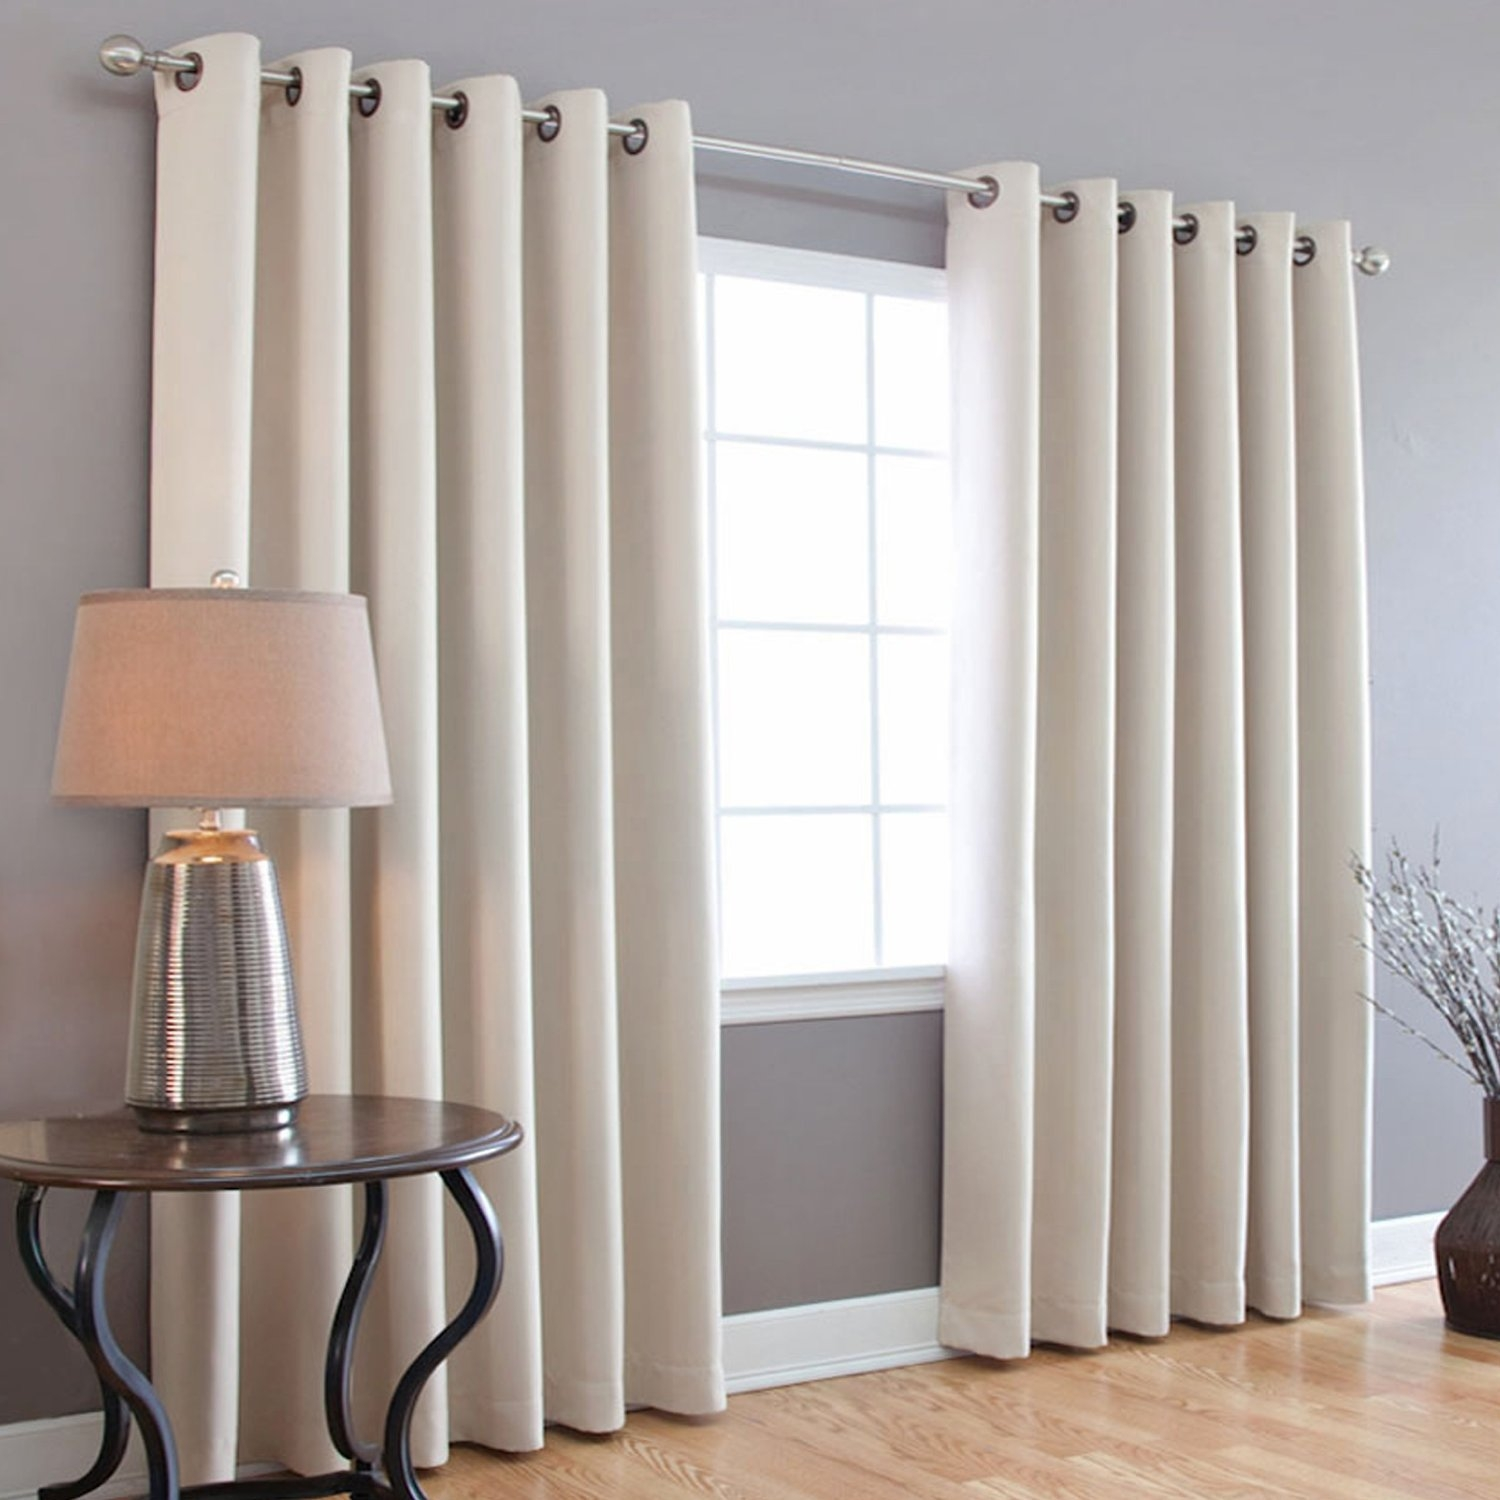 Blackout Curtains Guide With Grommets Jcpenney For Sliding Glass Within Plain White Blackout Curtains (View 8 of 15)